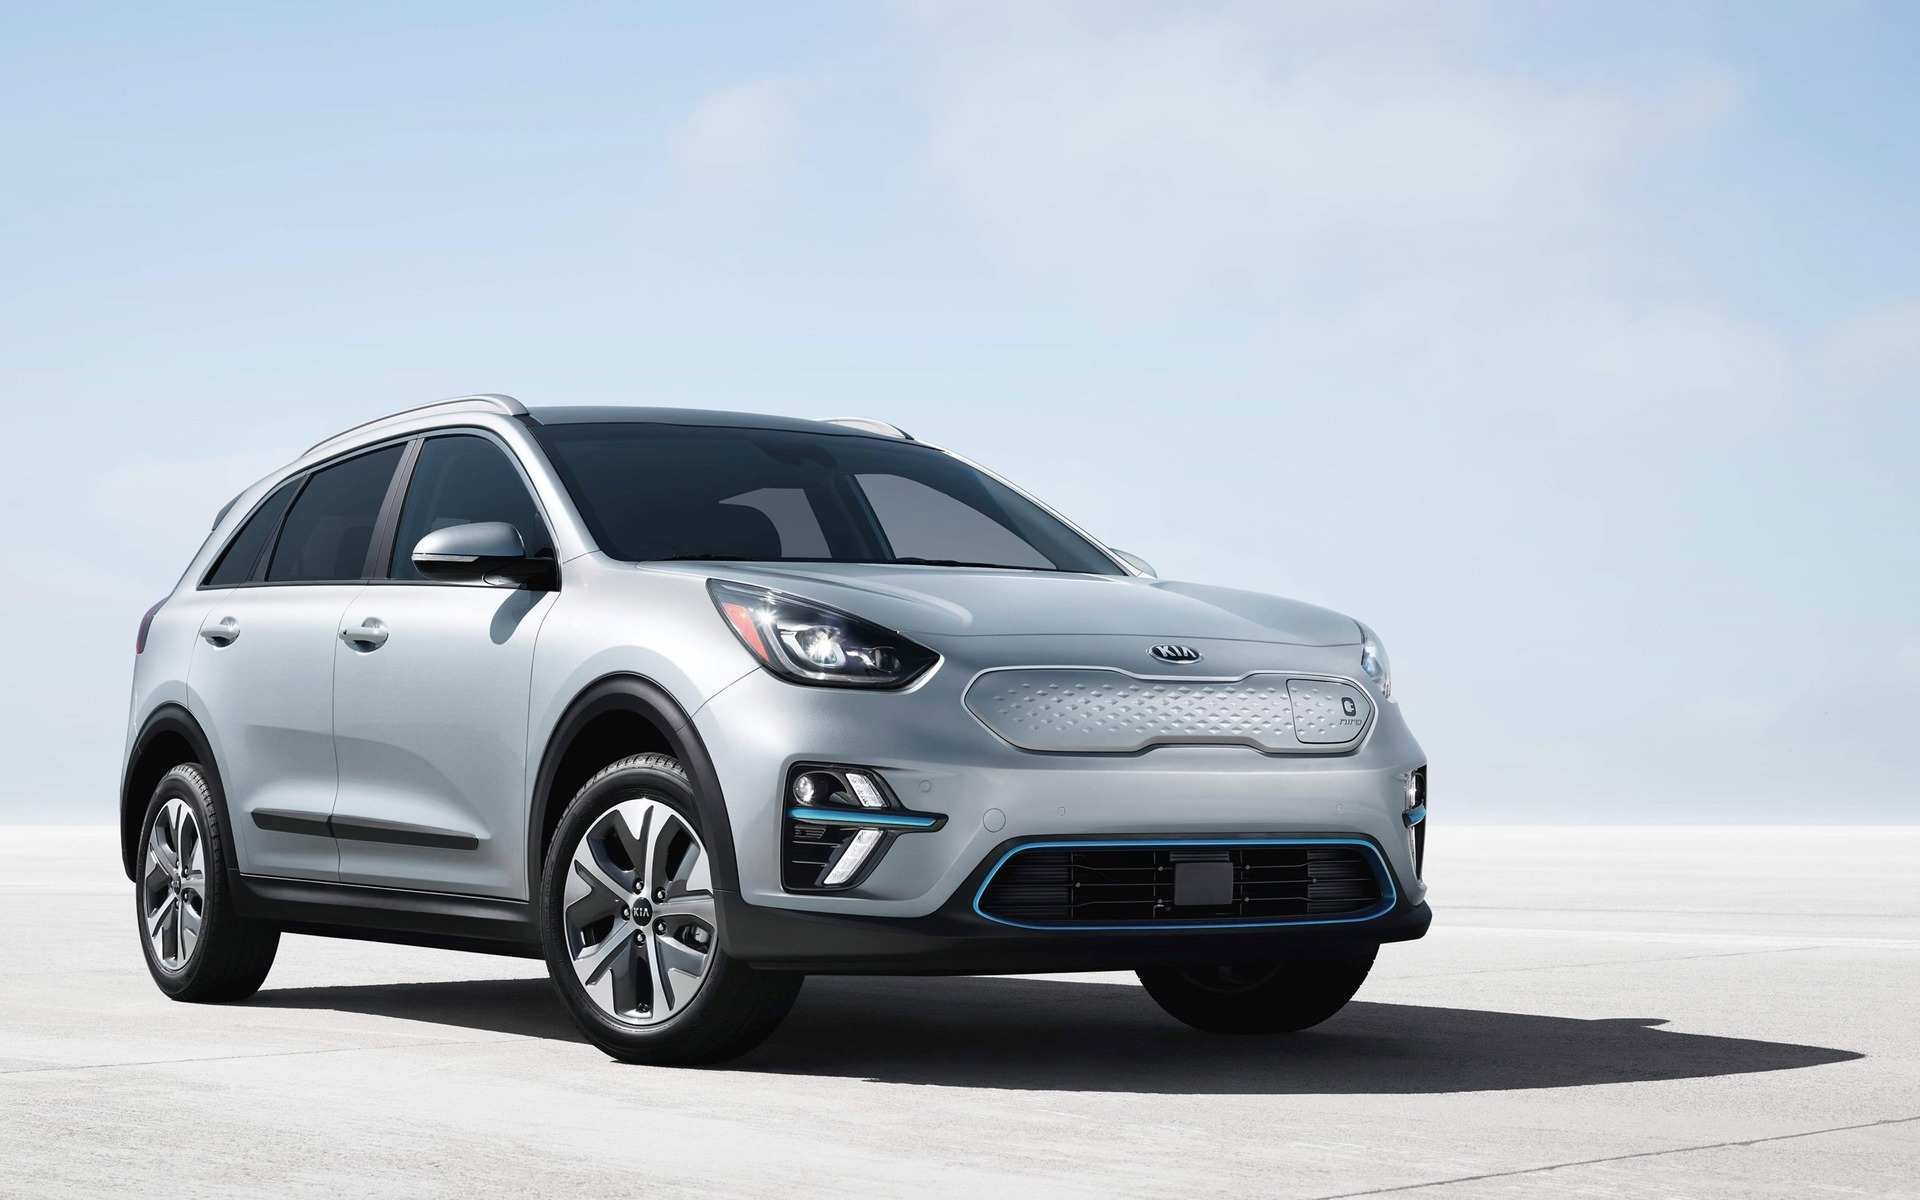 92 Best Review The Kia Niro 2019 Canada Redesign Photos for The Kia Niro 2019 Canada Redesign